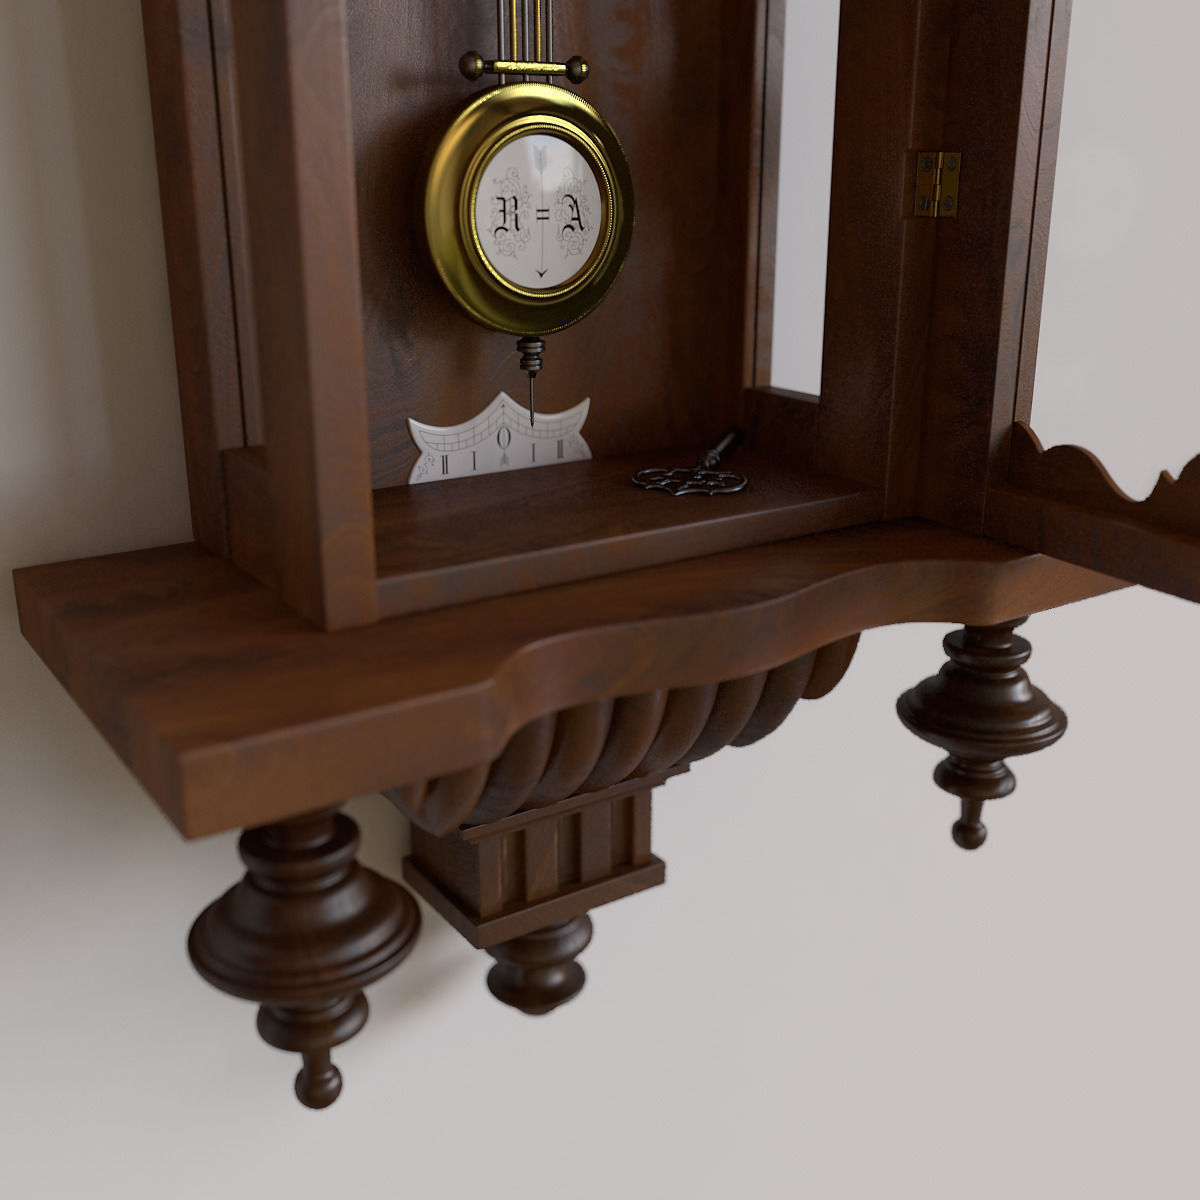 Antique Pendulum Wall Clock 3d Model Max Obj Cgtrader Com